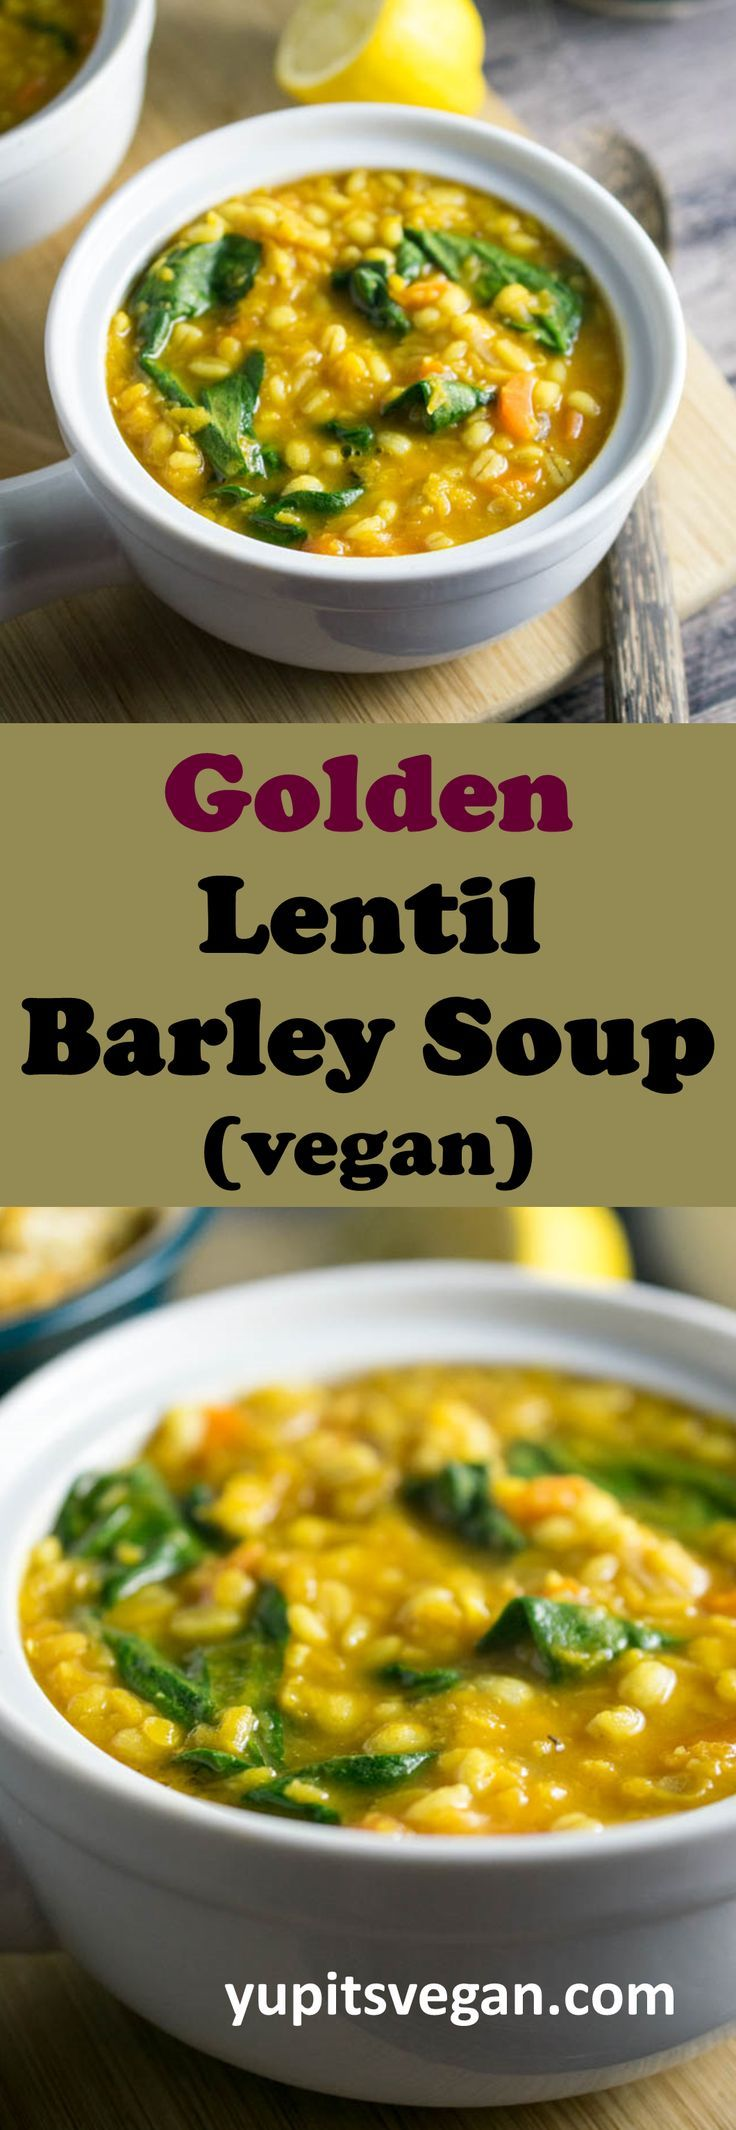 Warming Golden Lentil Barley Soup - the perfect healthy, filling soup to keep you warm! Gently spiced and flavored with bright fresh turmeric. #vegan #soup #lentil #barley #spinach #carrot